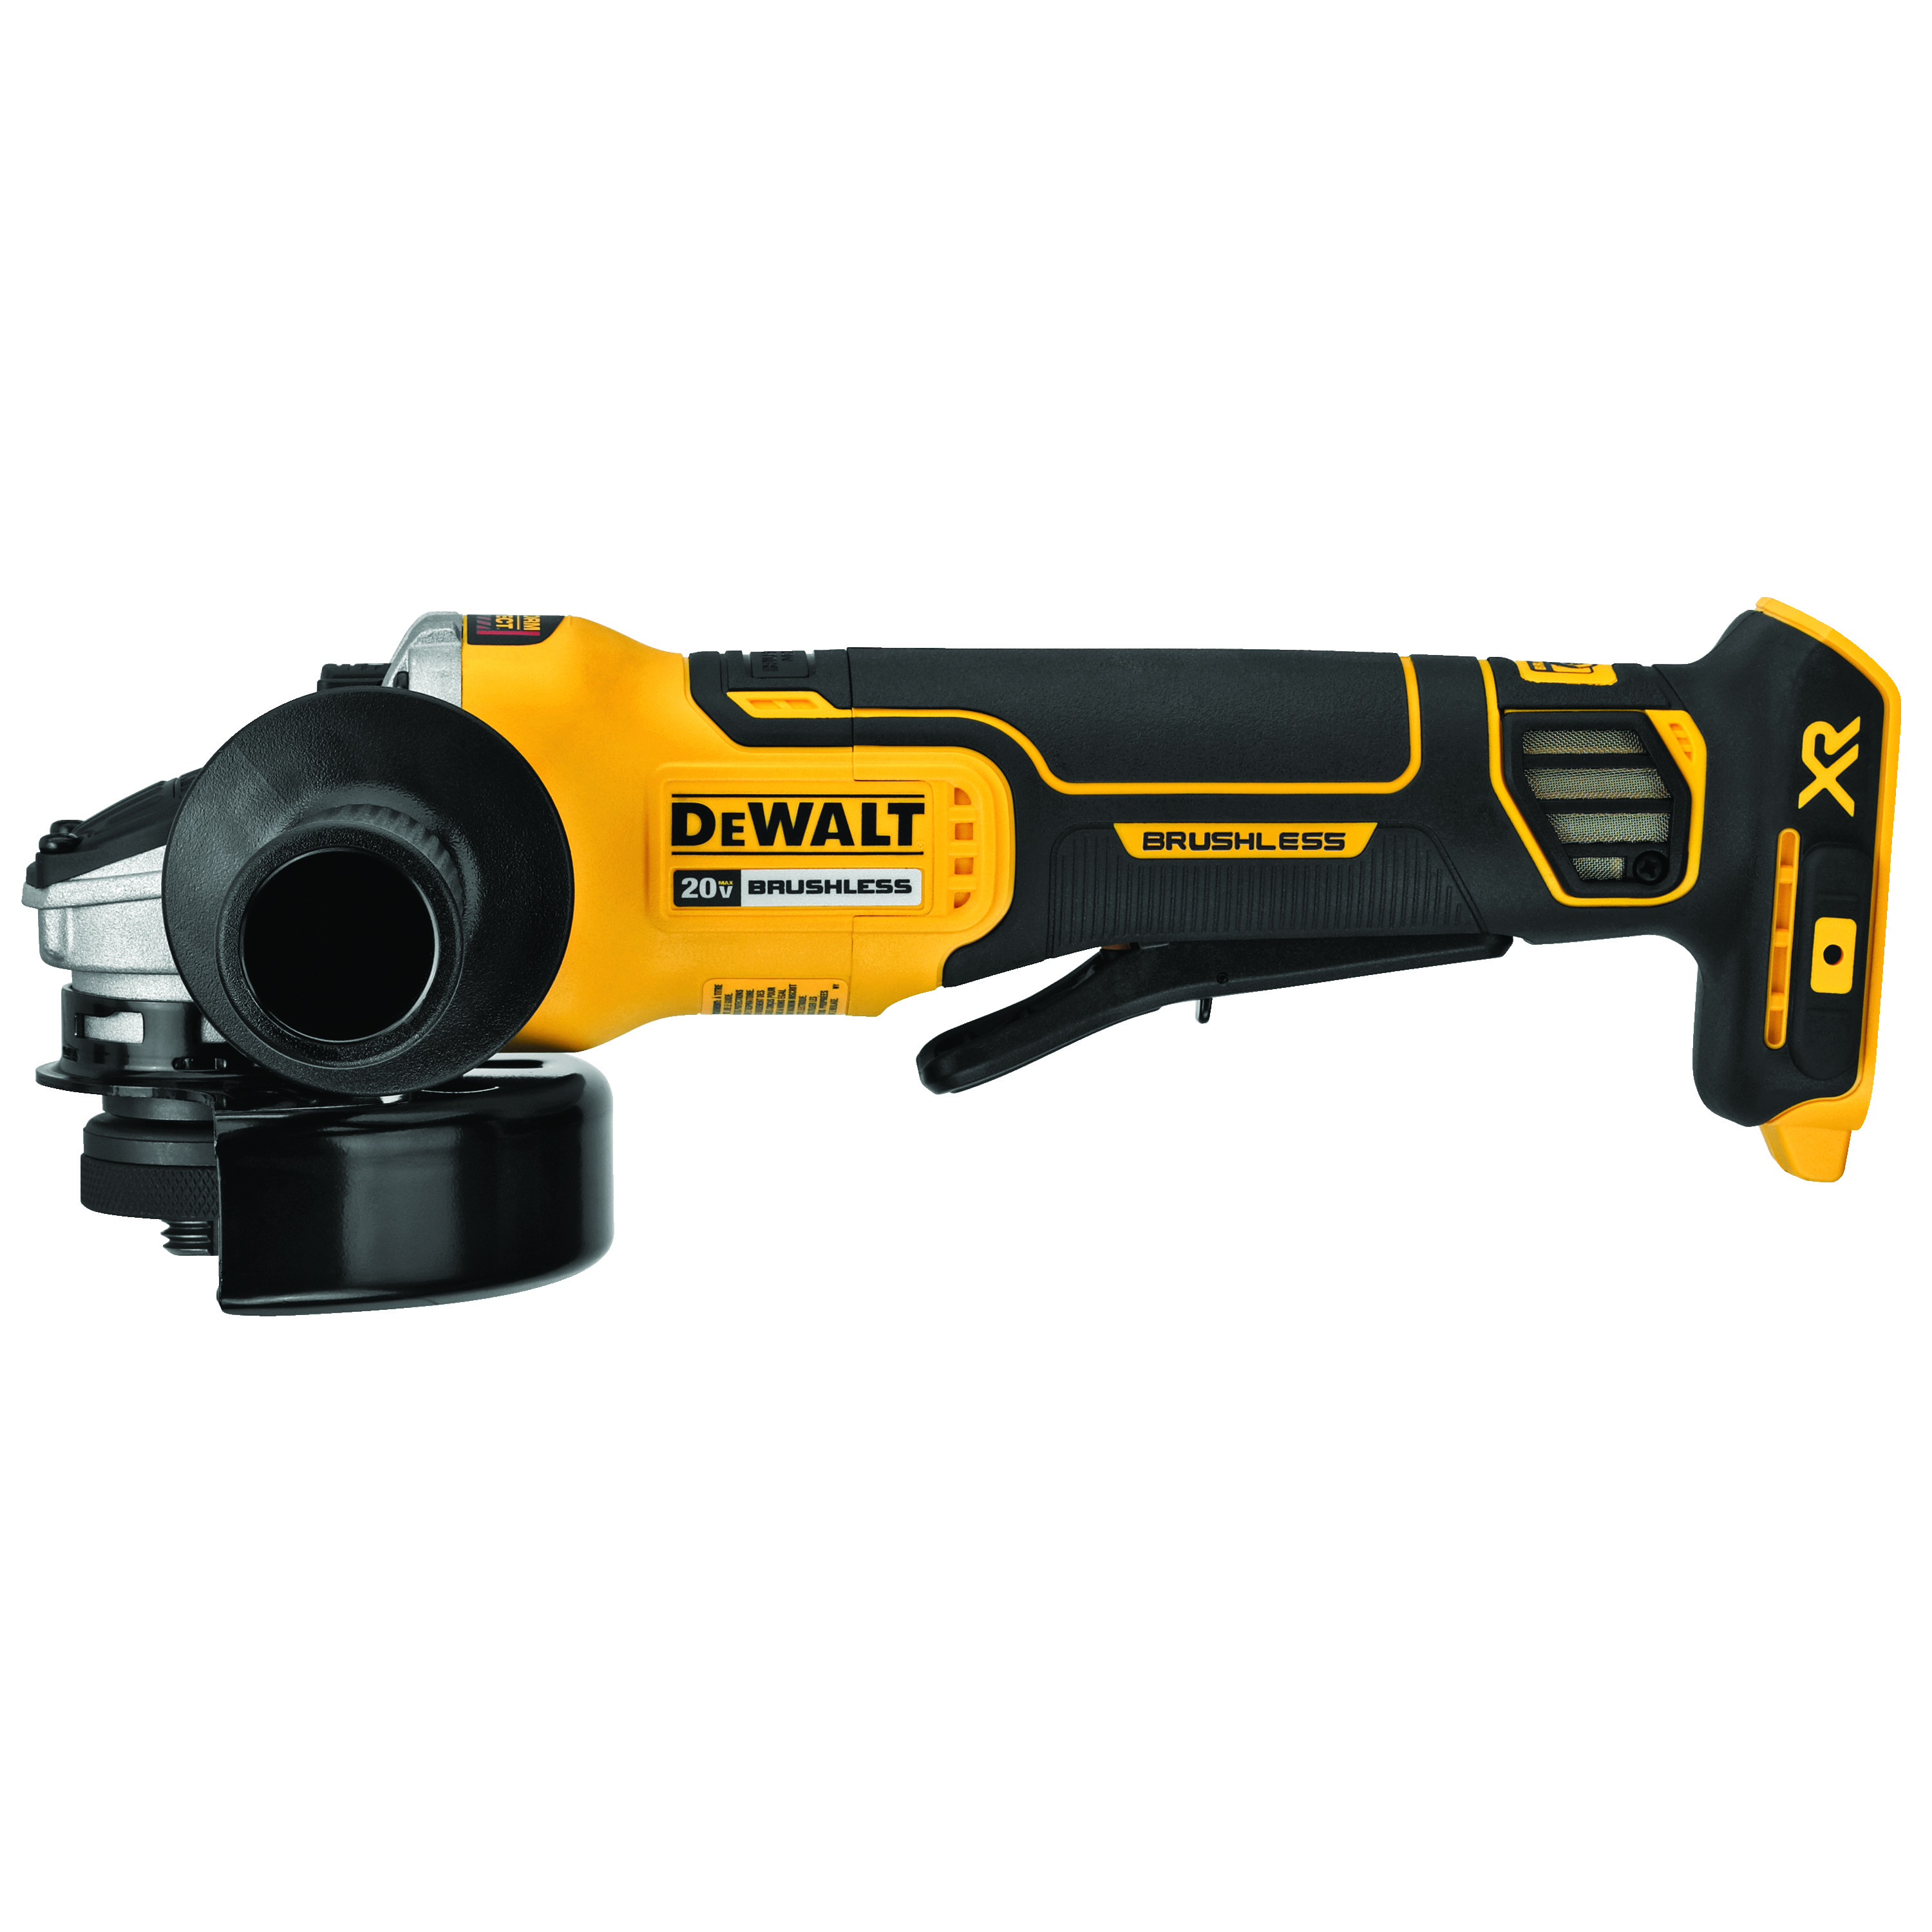 DeWALT® DCG413B Small Cordless Angle Grinder With Kickback Brake, 4-1/2 in Dia Wheel, 20 VDC, Lithium-Ion Battery, Paddle Switch